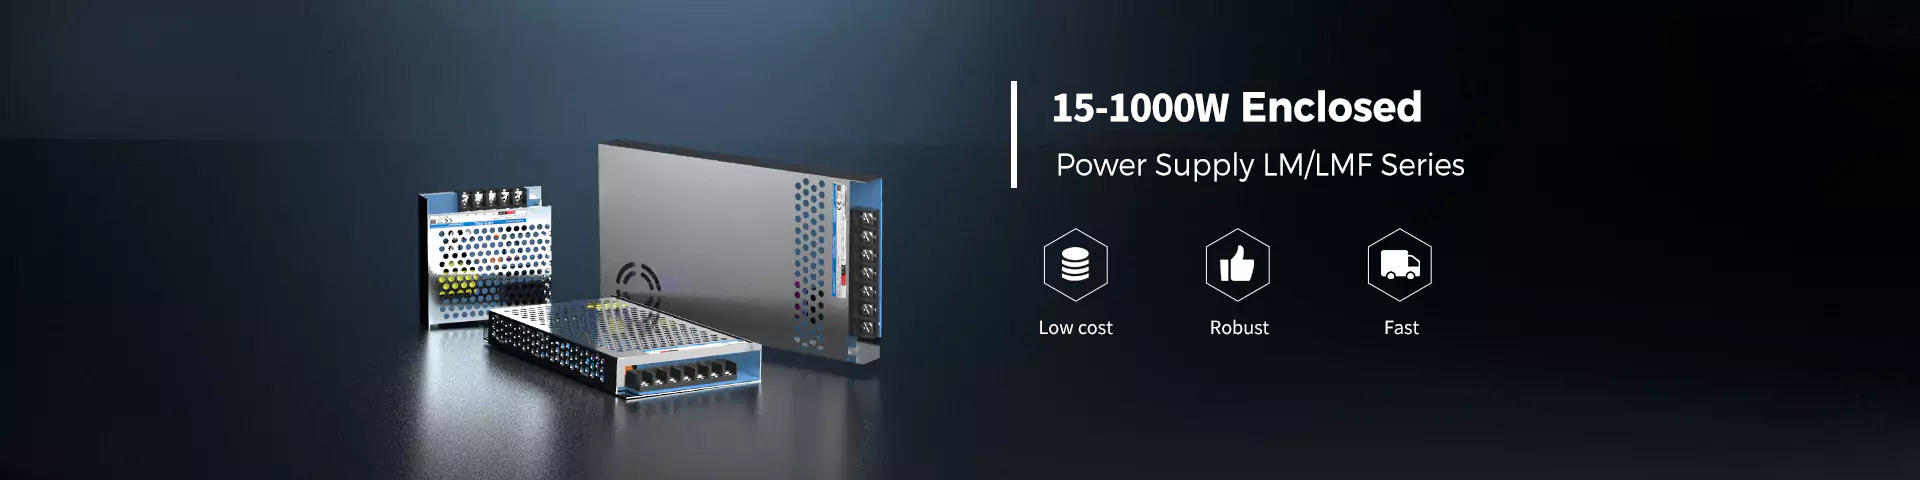 15-1000W Enclosed Switching Power Supply LM/LMF SMP